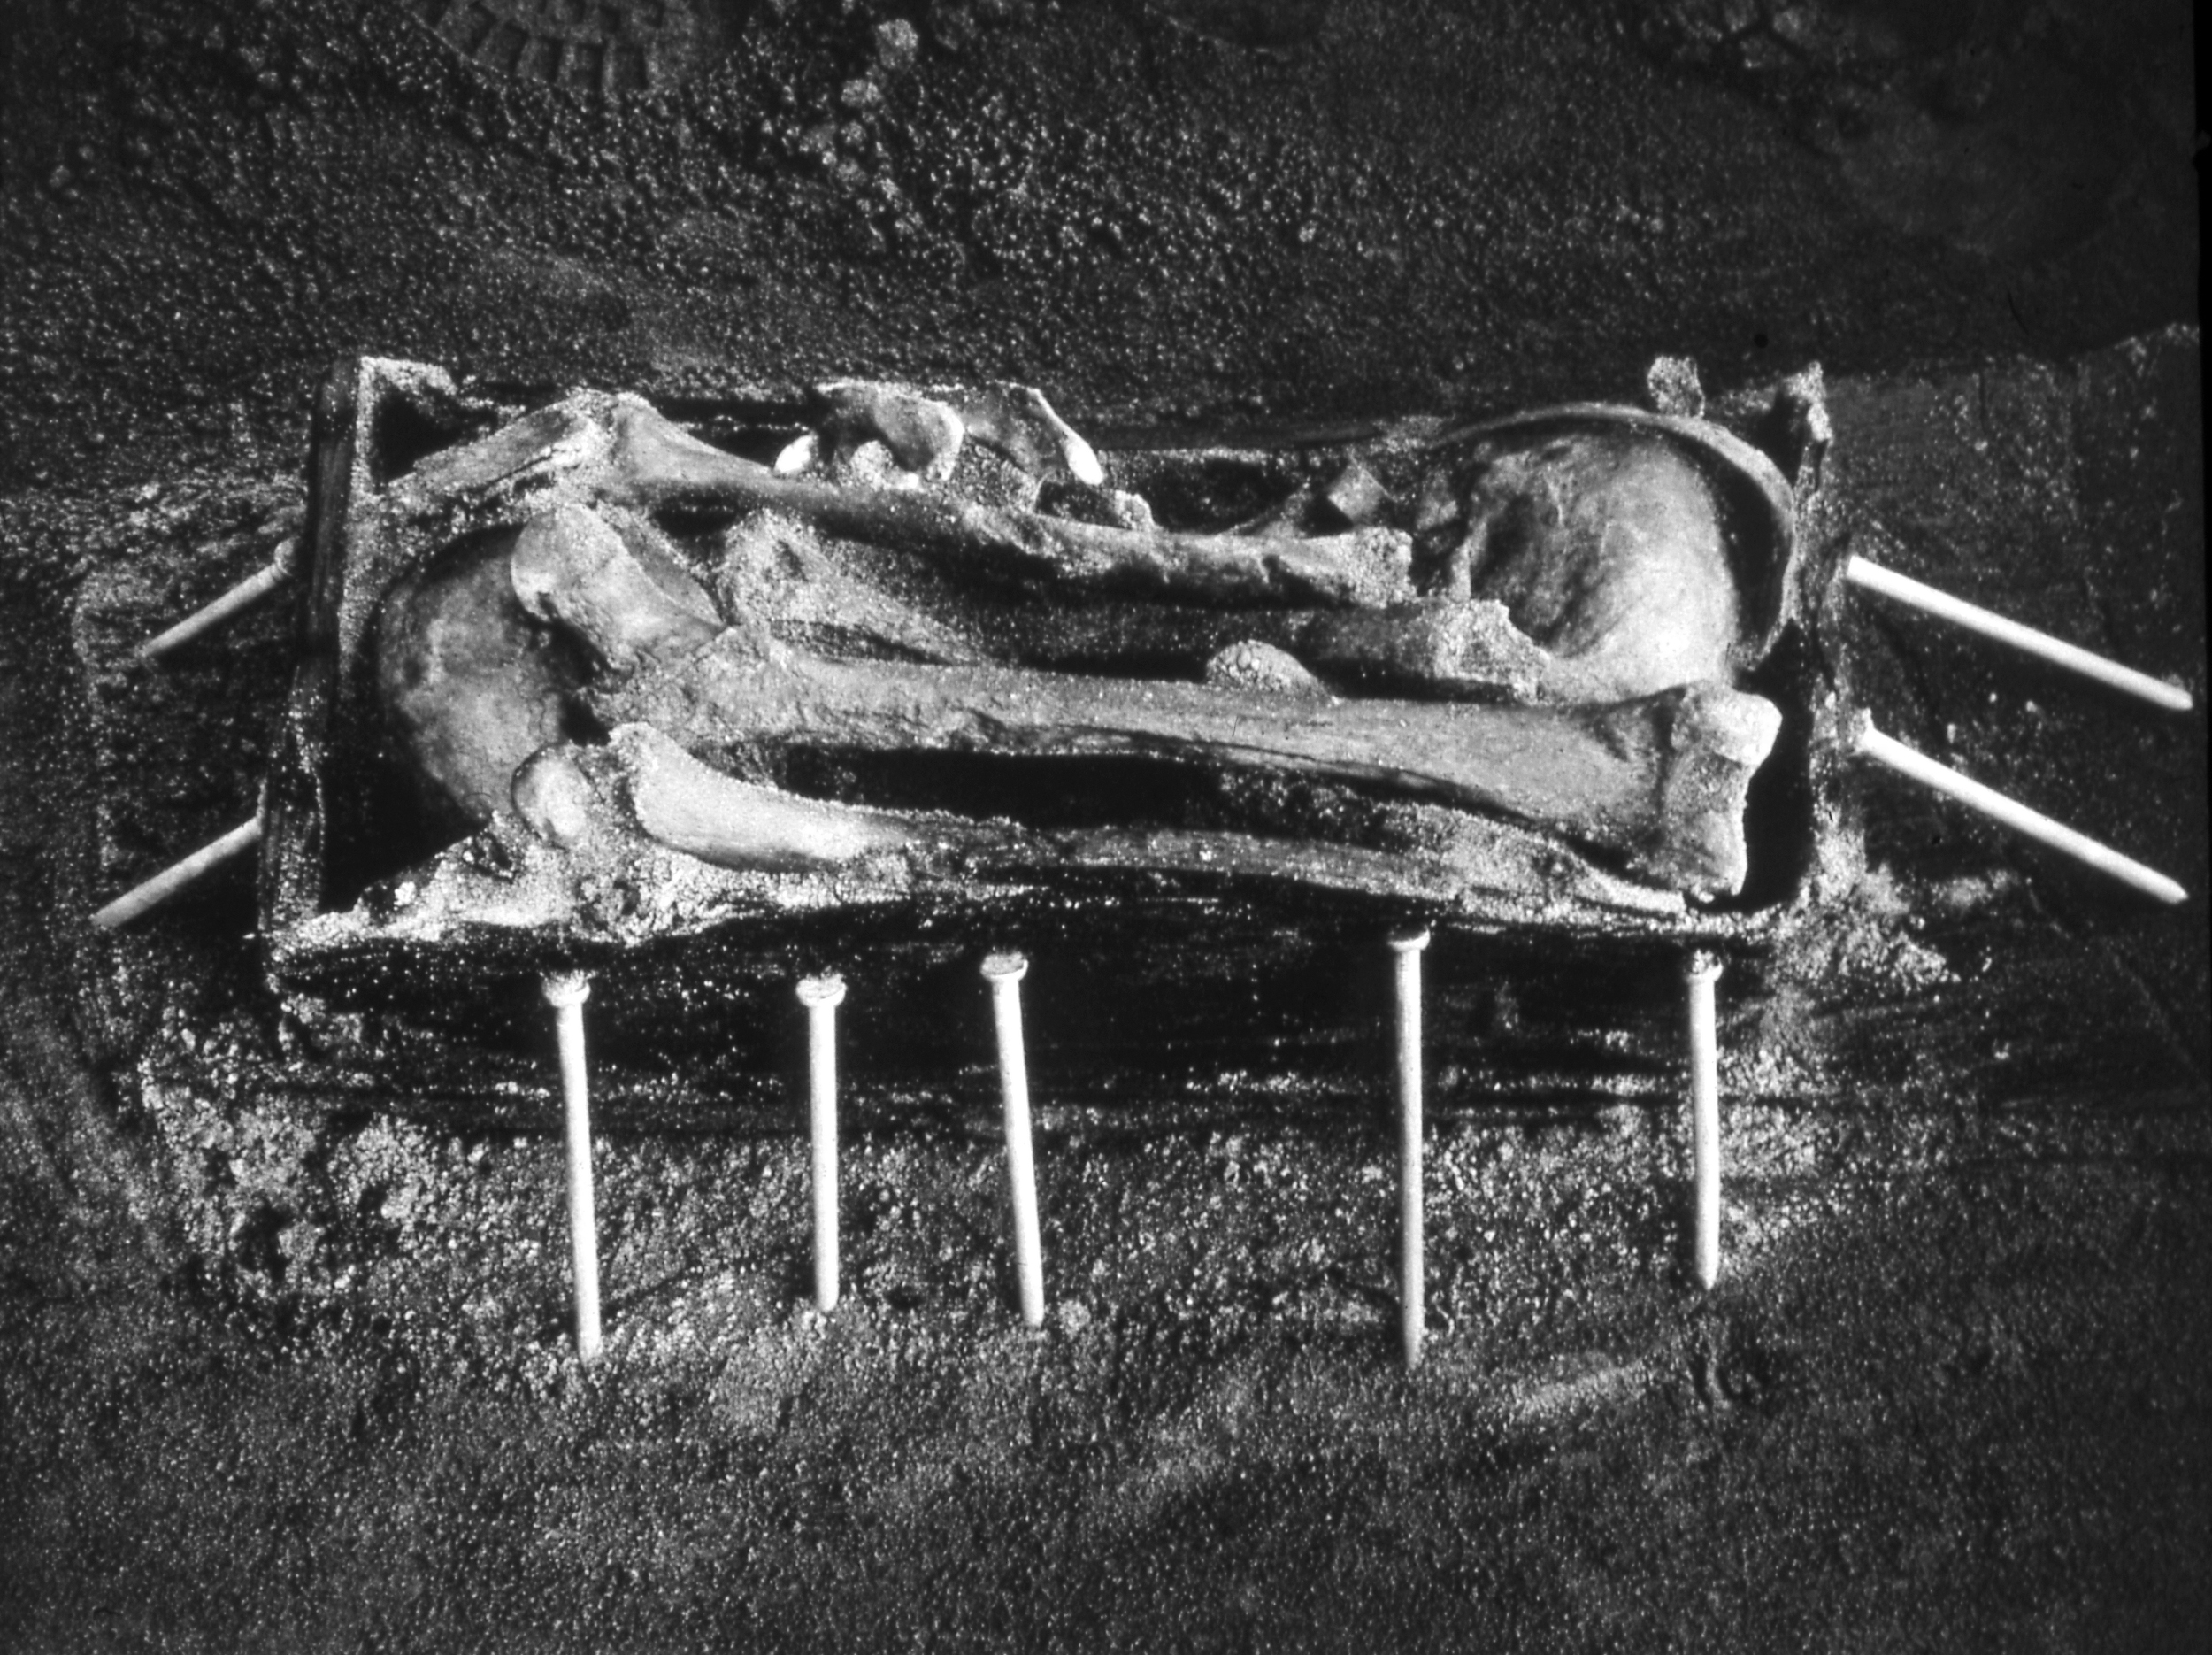 Burial With Nails, 1994